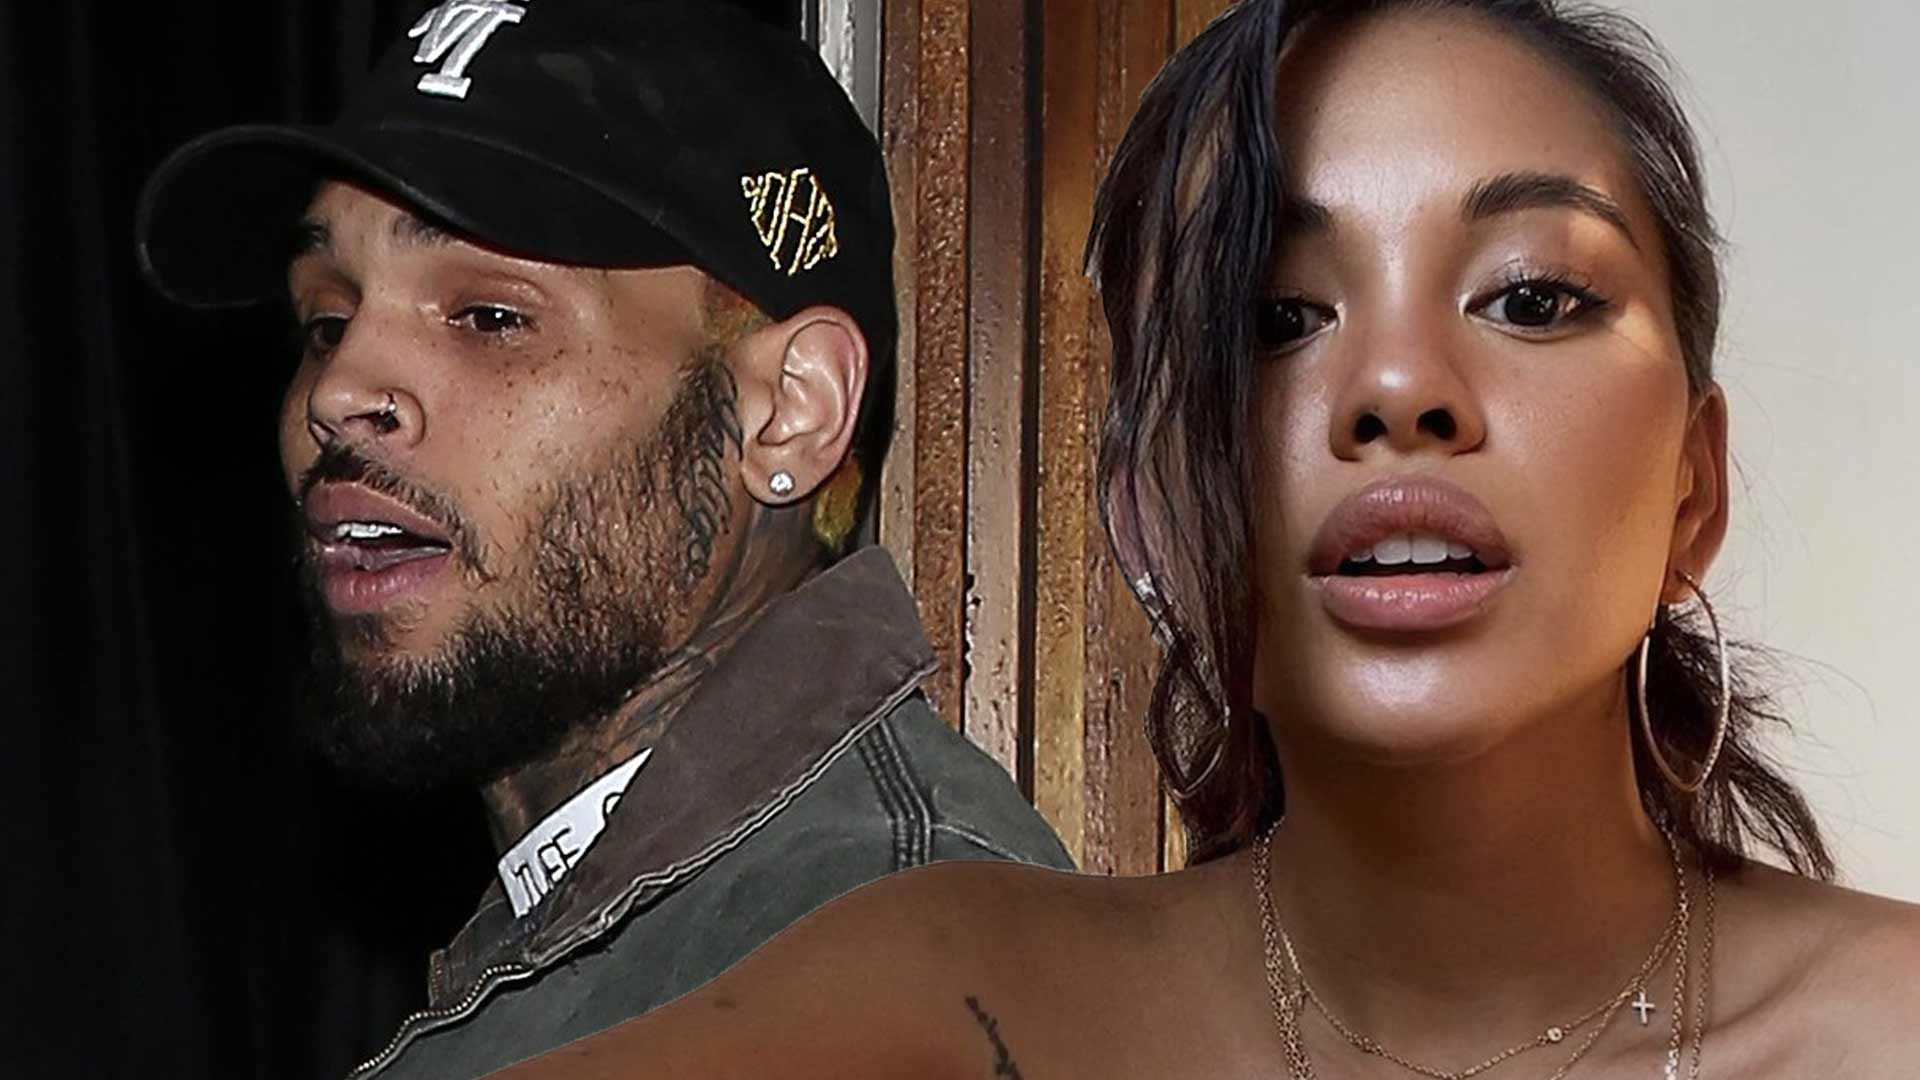 Ammika Harris Shares Hot Chris Brown Pic On Her IG Stories Only Weeks After Unfollowing Him!